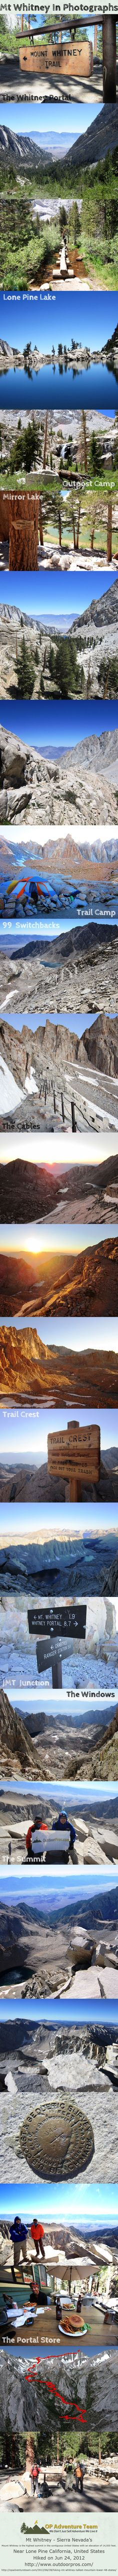 Mt Whitney Hike in Photos, love it..I did this hike and can't wait to do it again!!!